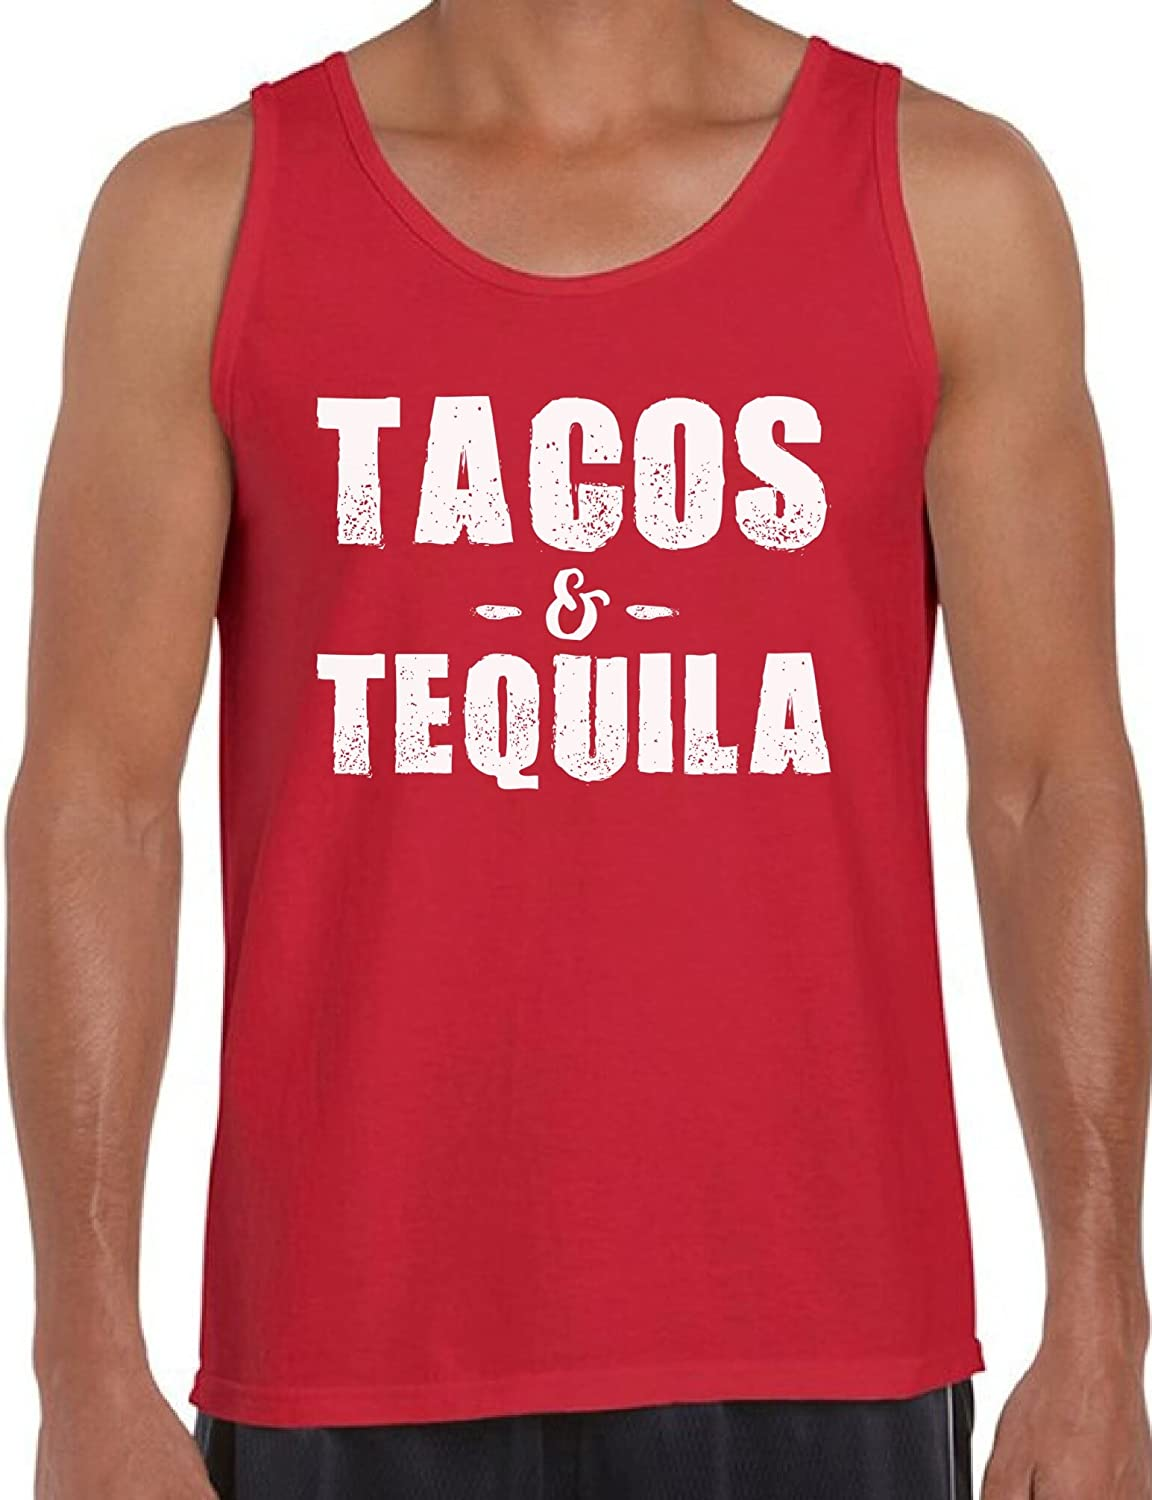 Awkward Styles Men's Tacos & Tequila Tank Tops White Mexican Vacation Funny Saying